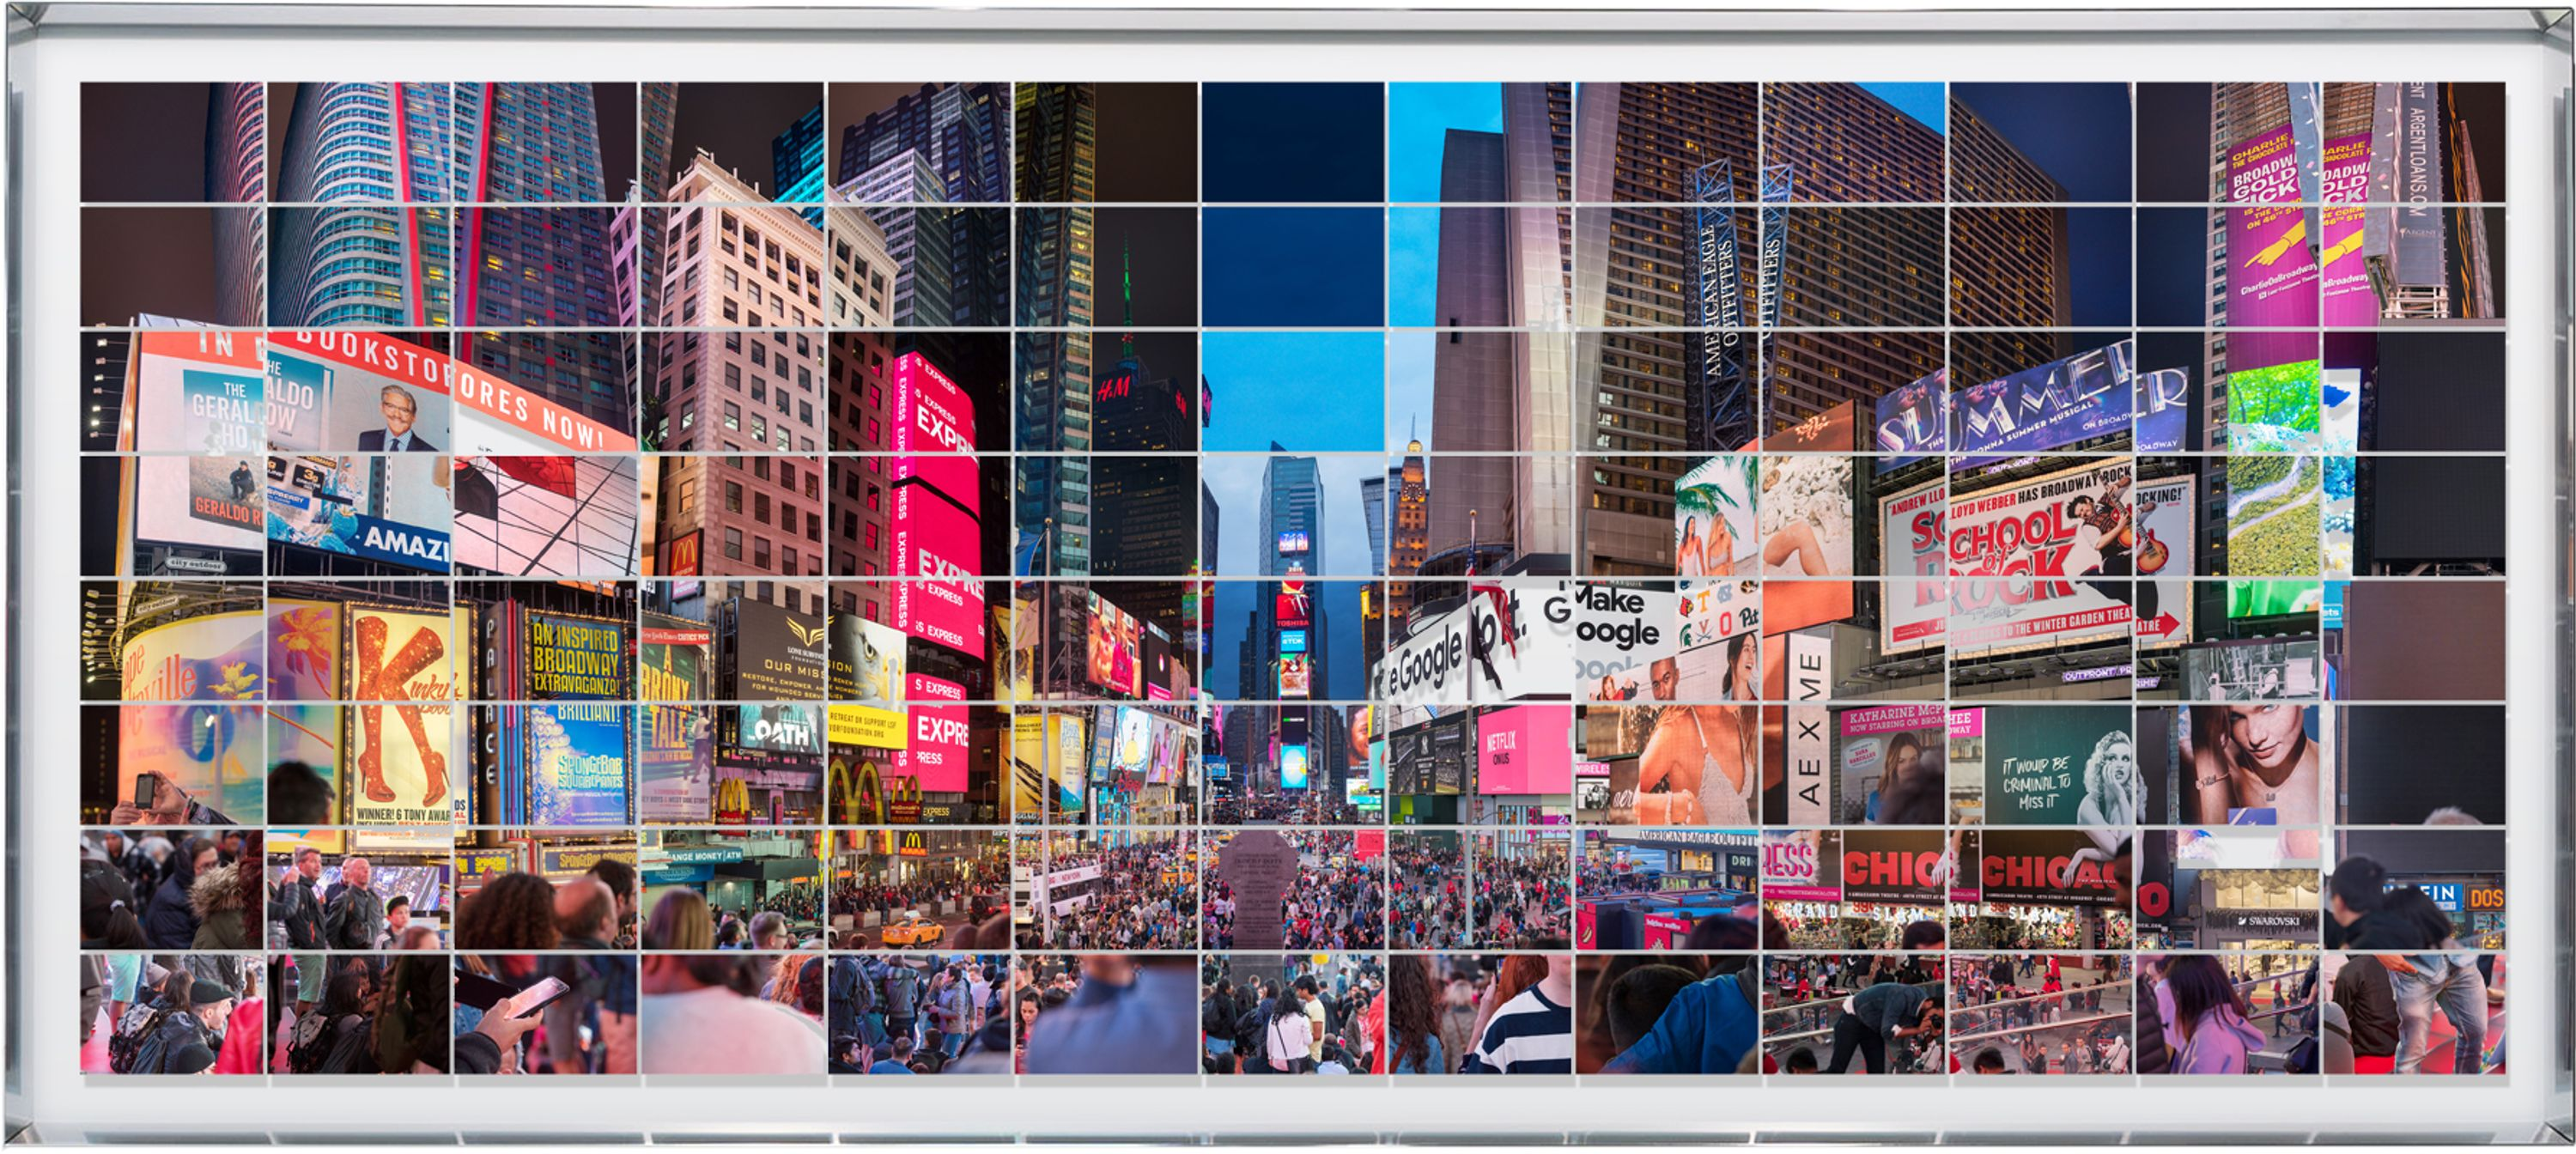 CRONORAMI series | NYC Times Square | Variation #01 by Max Farina, Cabiria Art Gallery